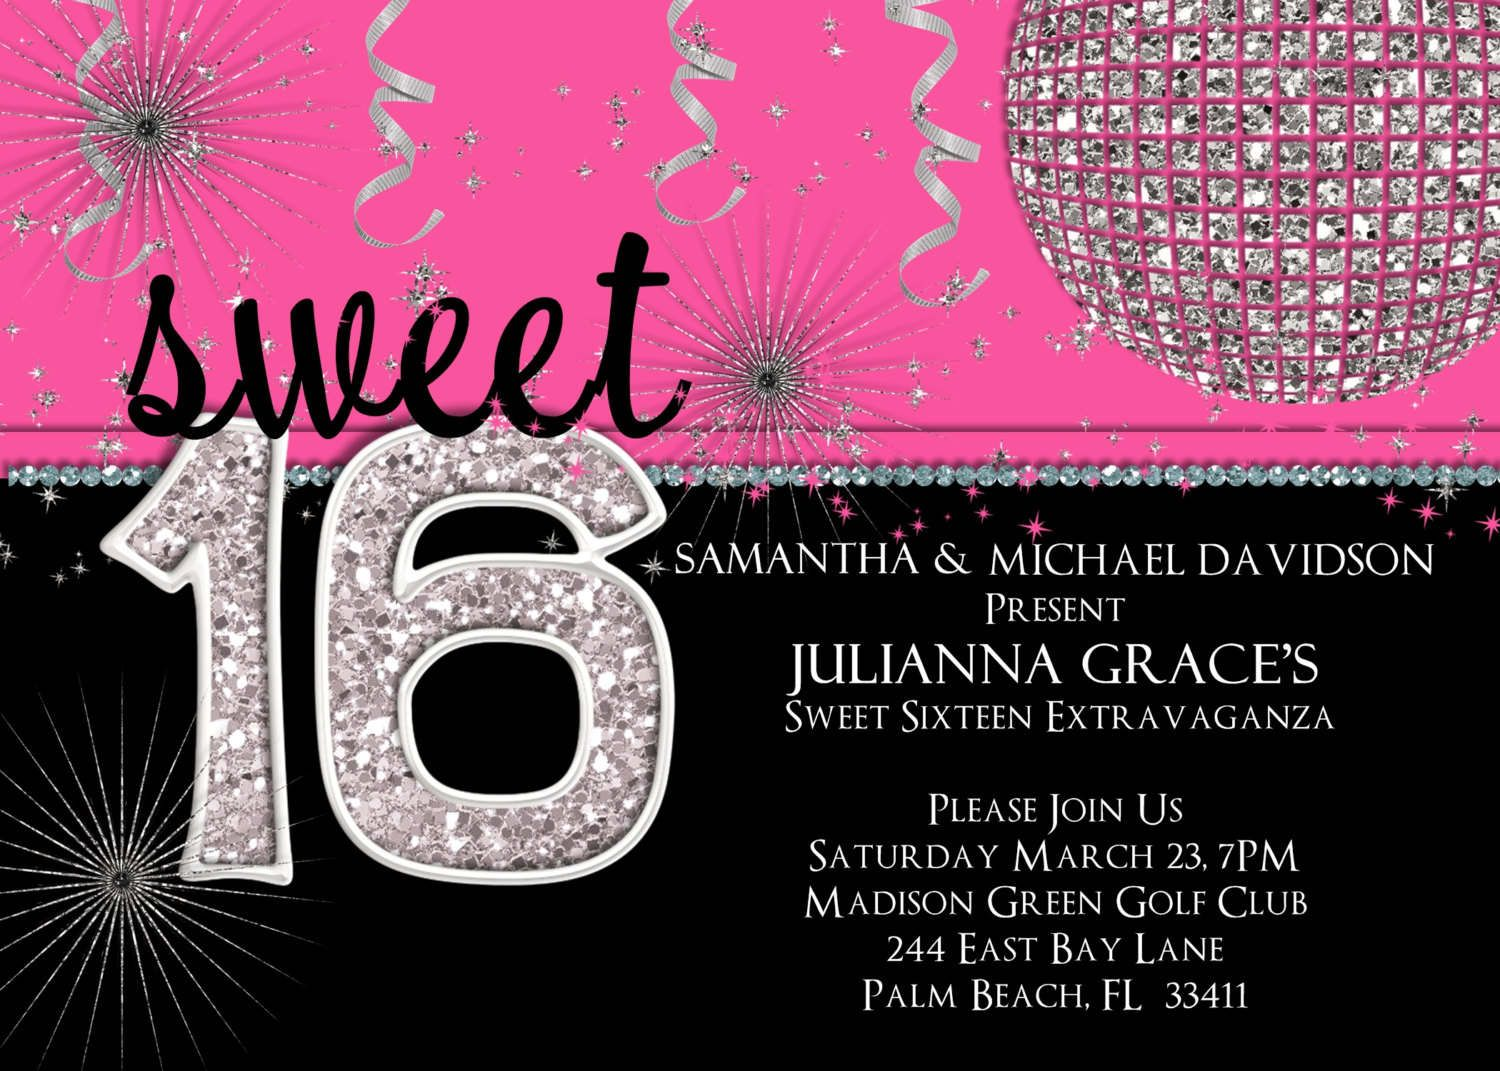 Sweet Sixteen Invitations Sweet Invitation Templates With Black - Sweet 16 party invitation templates